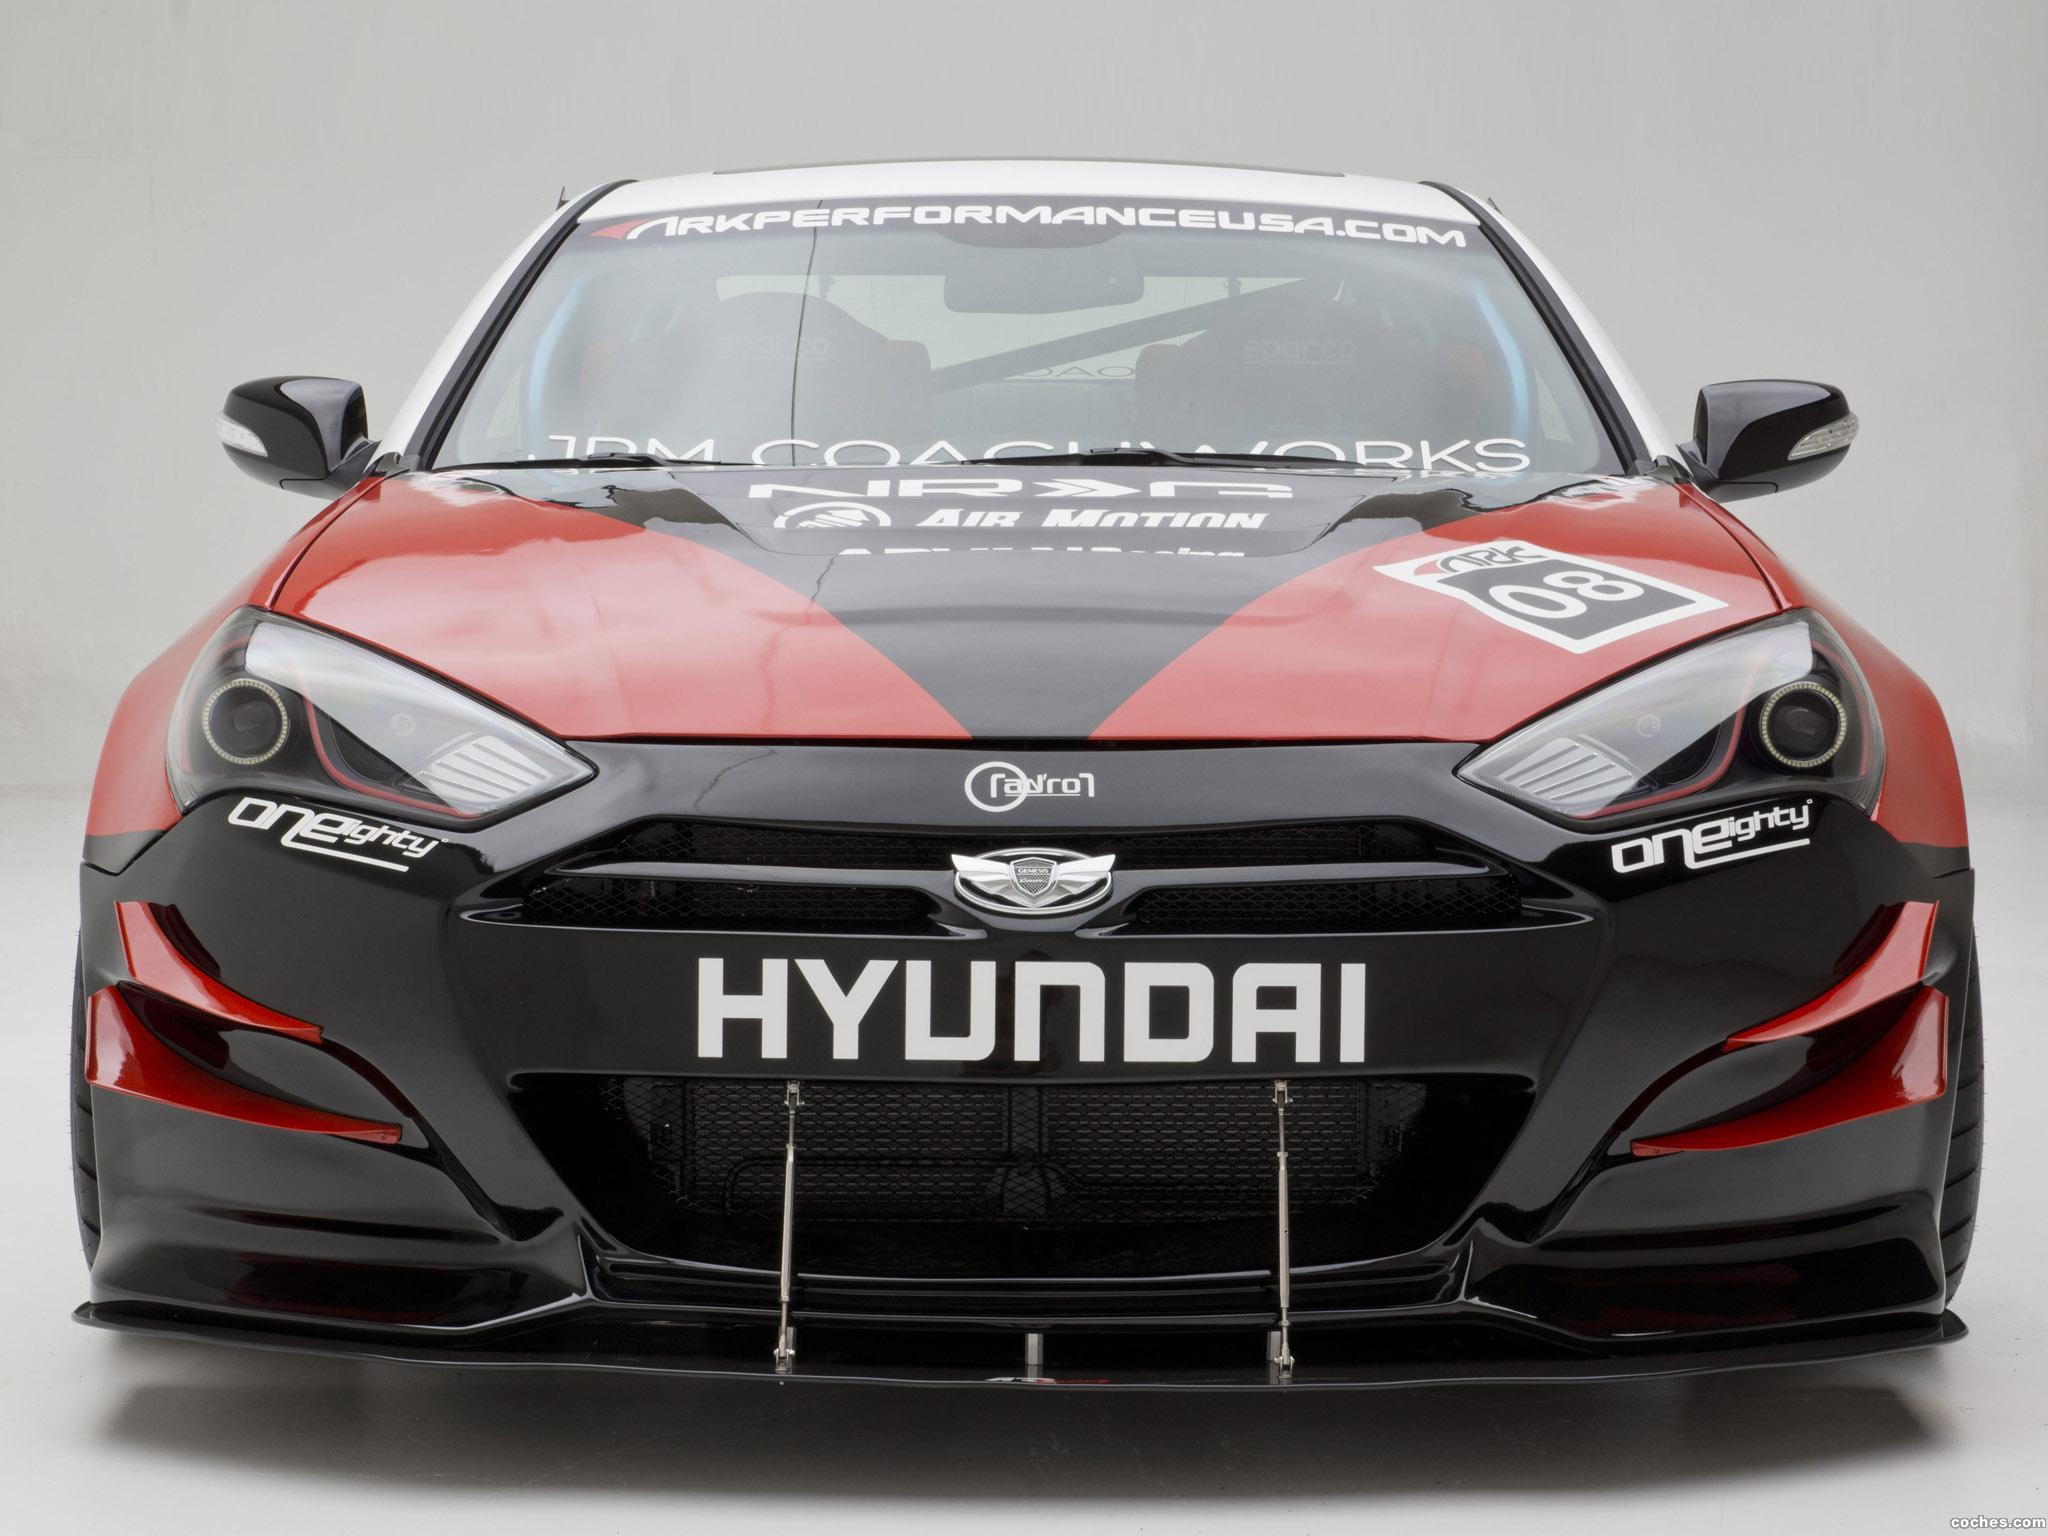 Foto 8 de Hyundai Genesis Coupe R-Spec Track Edition ARK Performance 2012